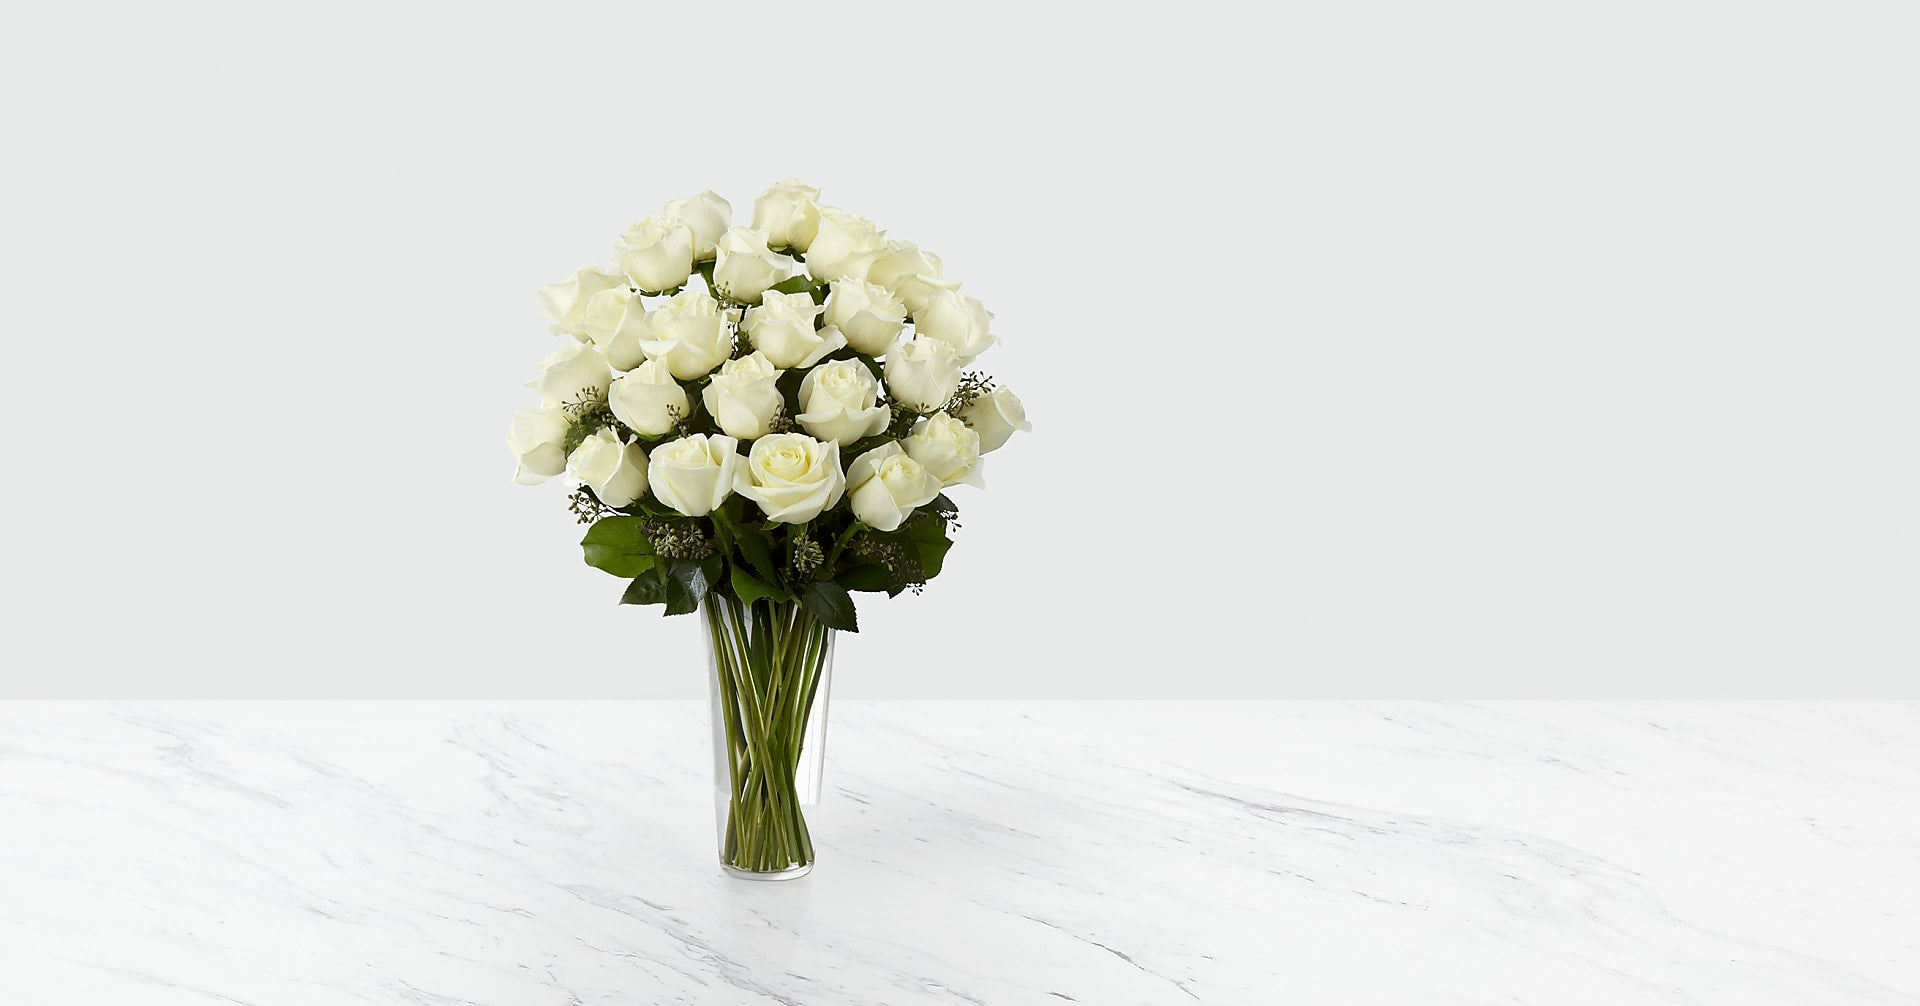 The White Rose Bouquet - VASE INCLUDED - Image 1 Of 2